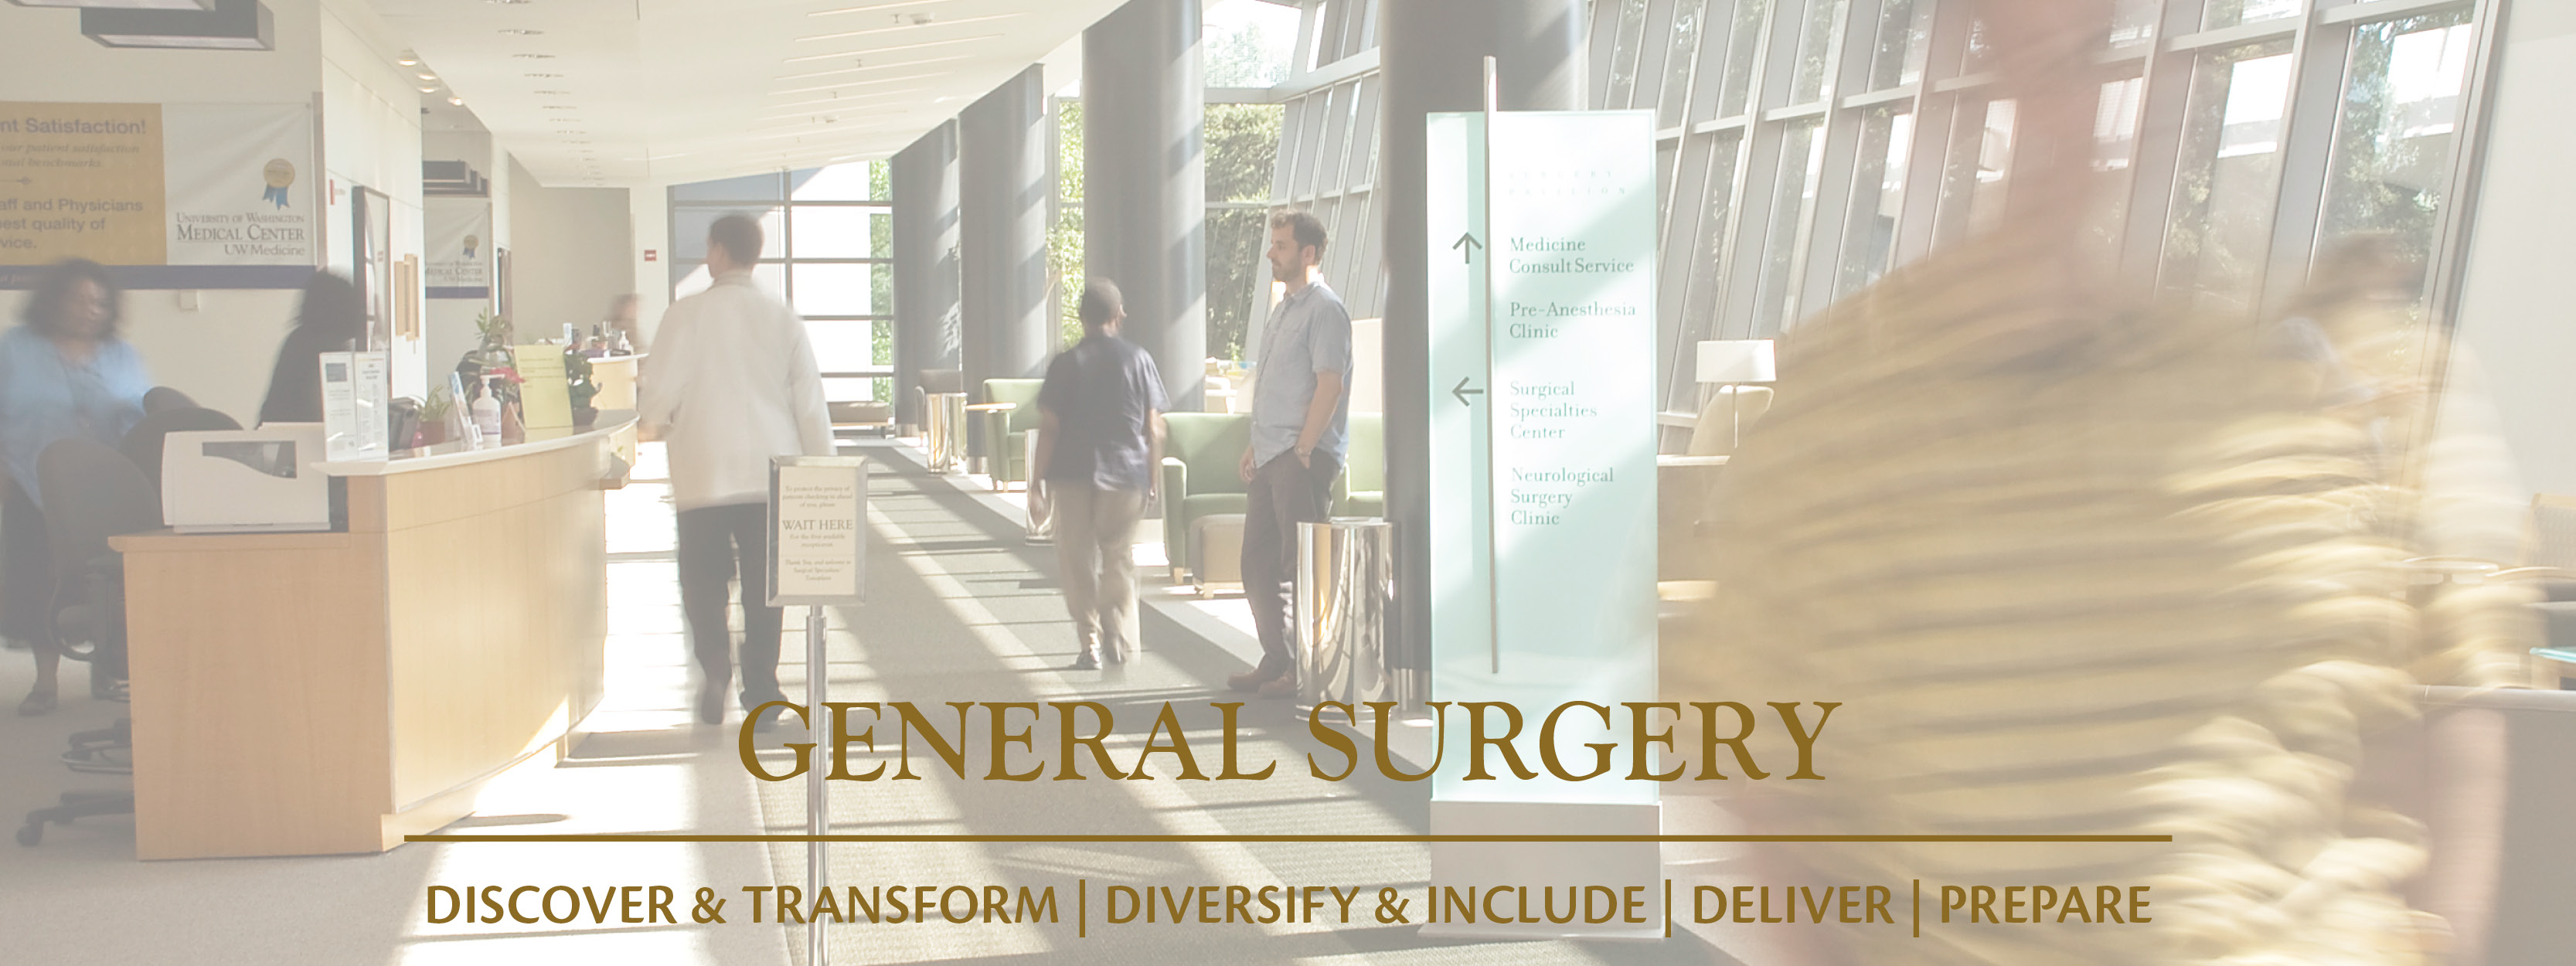 general-surgery-page-photos